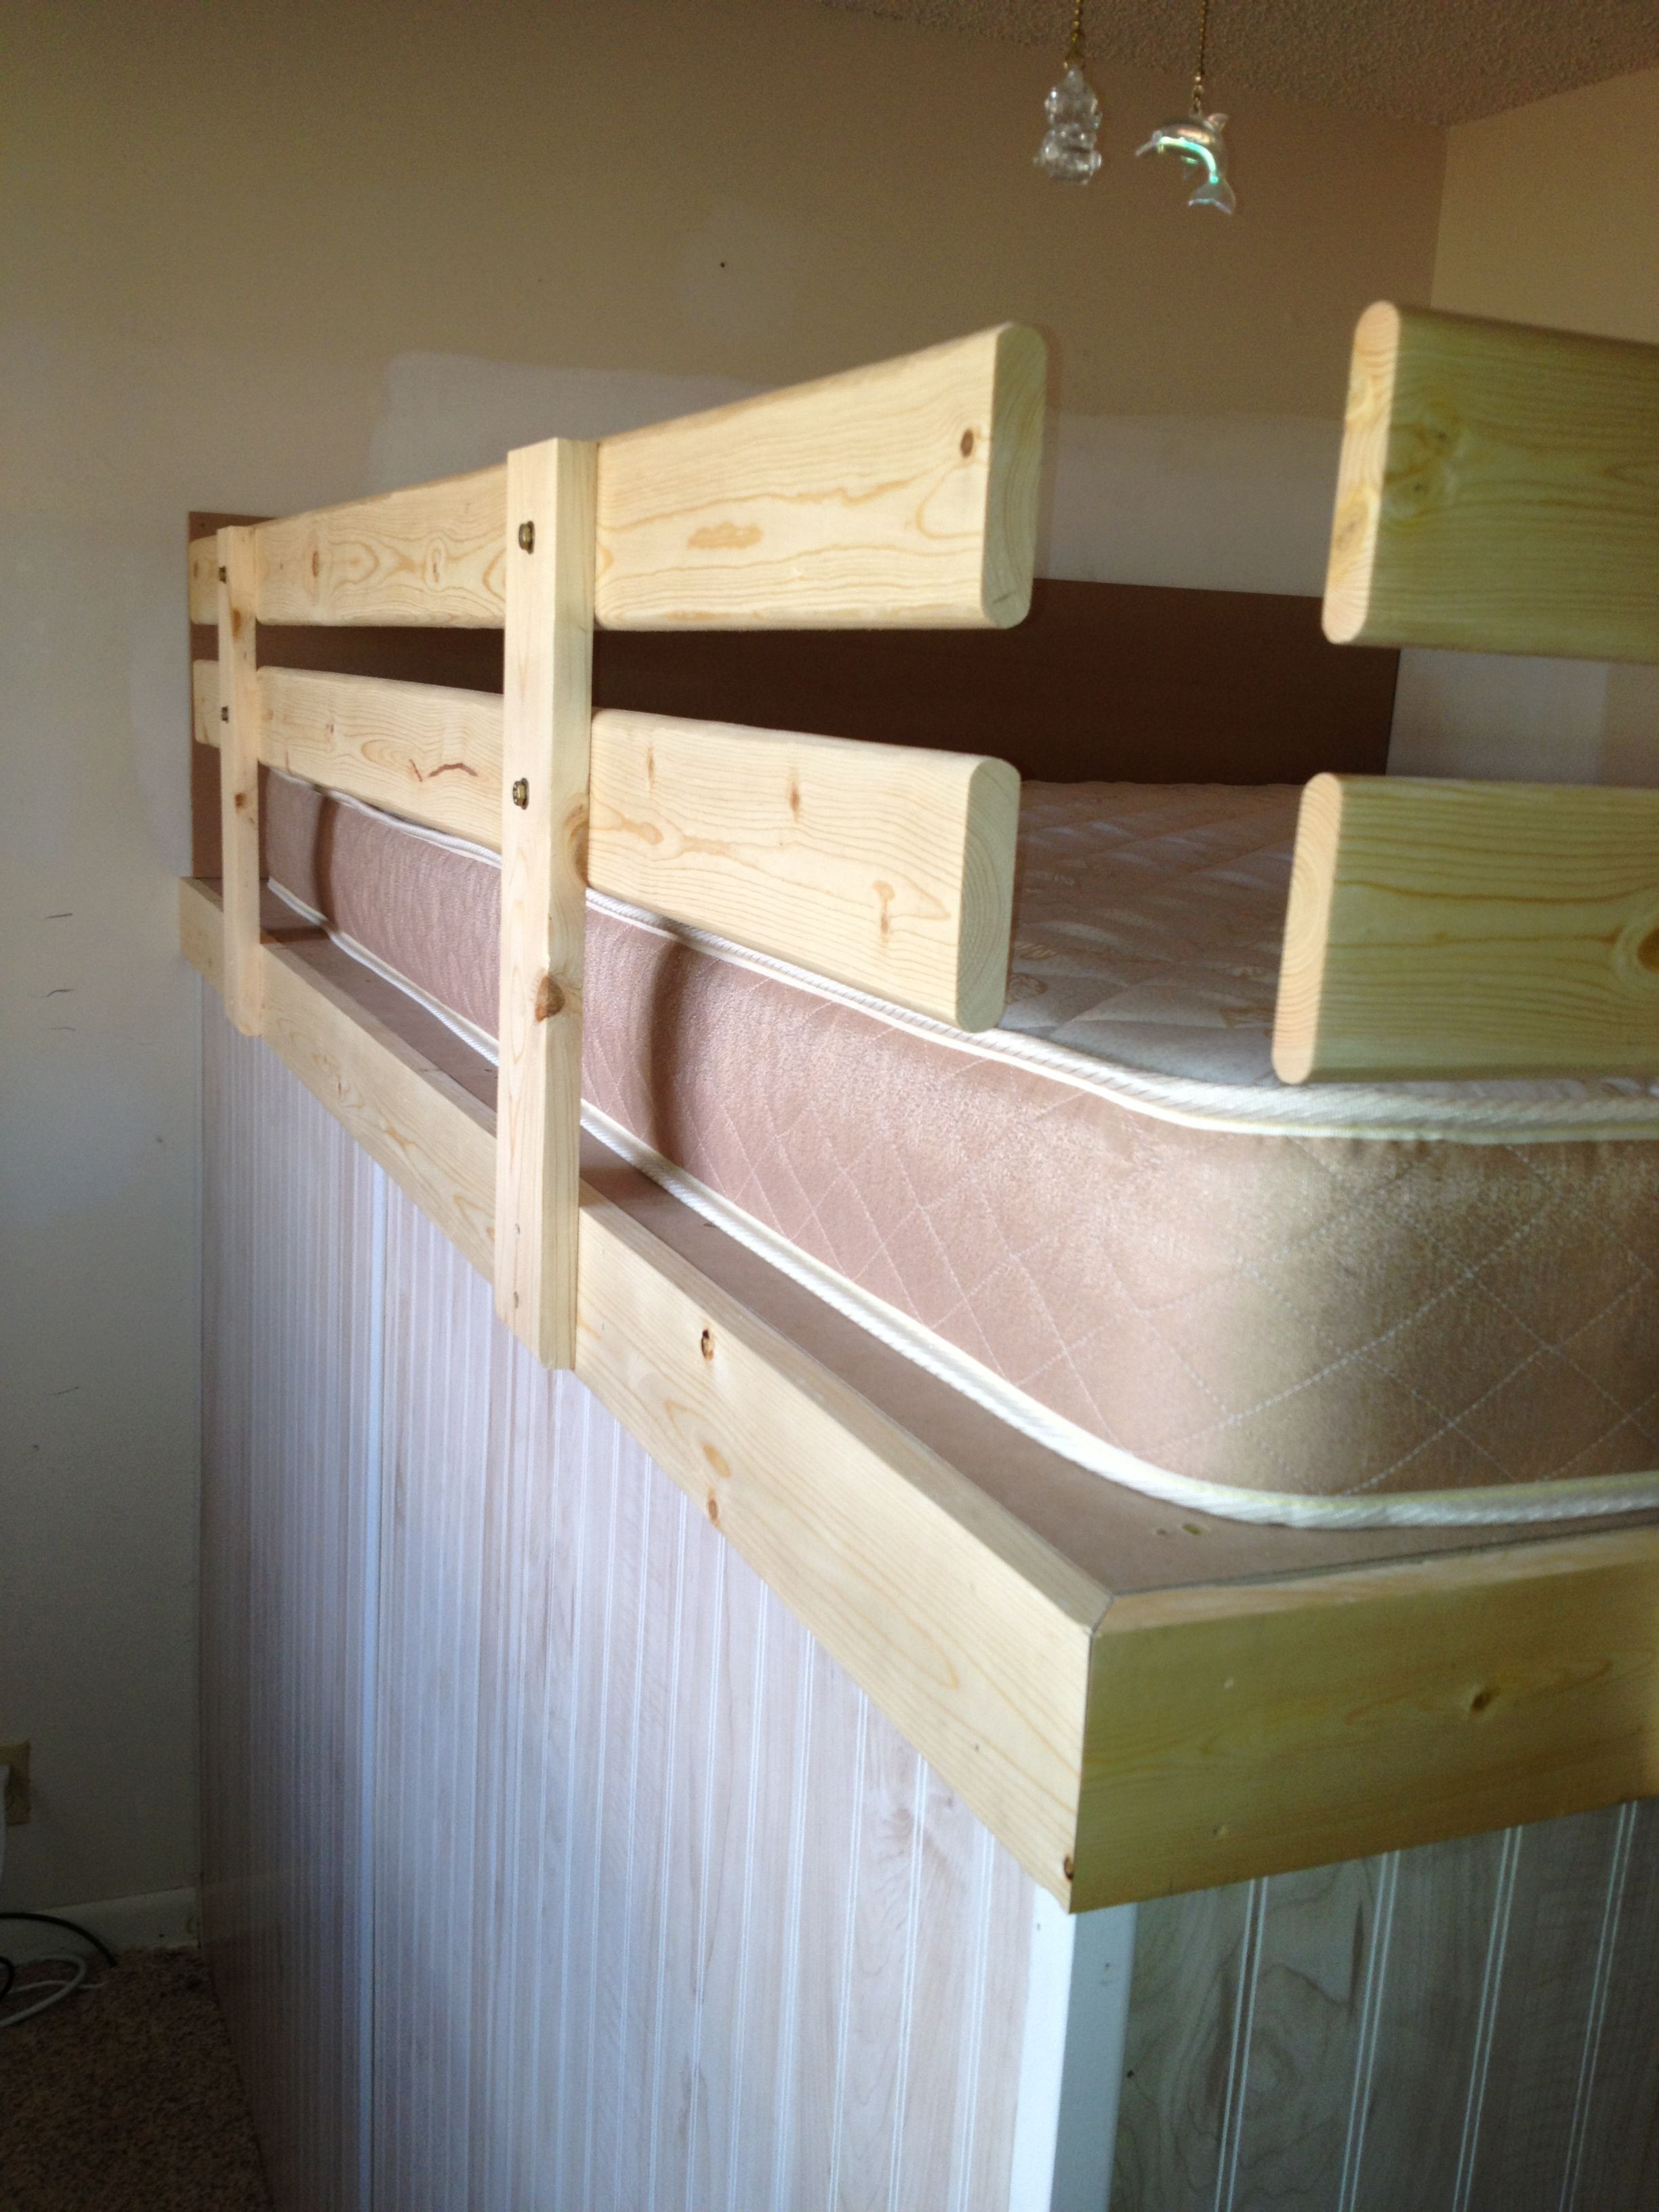 Best ideas about DIY Bed Rail . Save or Pin Safety rails for loft bed grodconstruction diy Now.